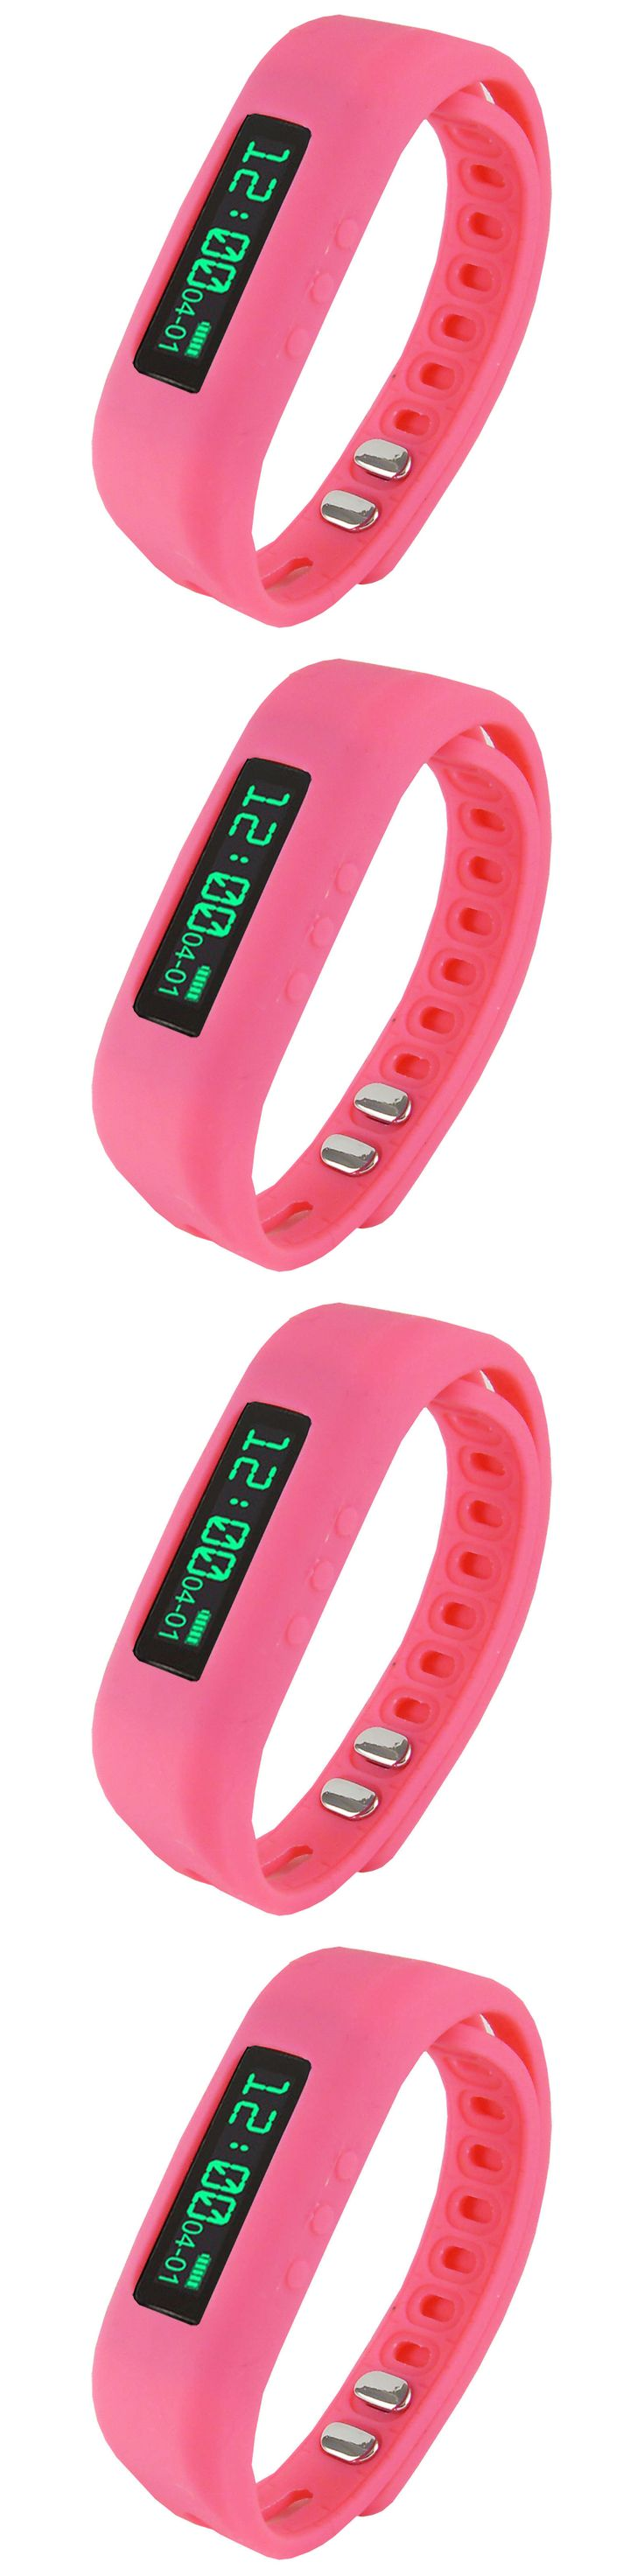 Pedometers 44077: Fitbit Alta Fitness Wristband With Bluetooth Pedometer, Calorie Counter Pink -> BUY IT NOW ONLY: $43.76 on eBay!